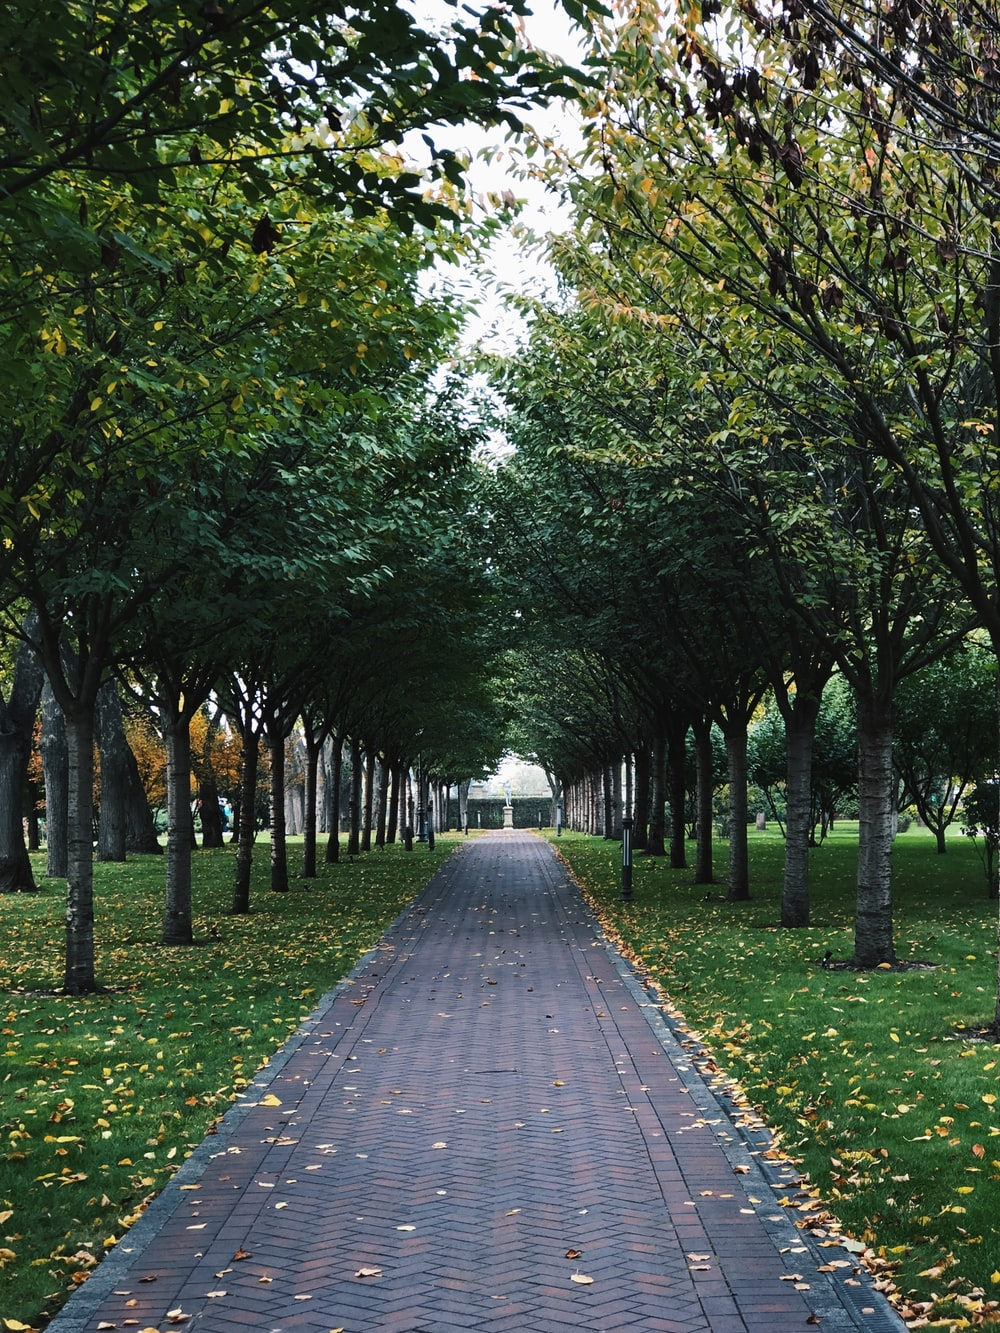 gray concrete pathway between green grass and trees during daytime